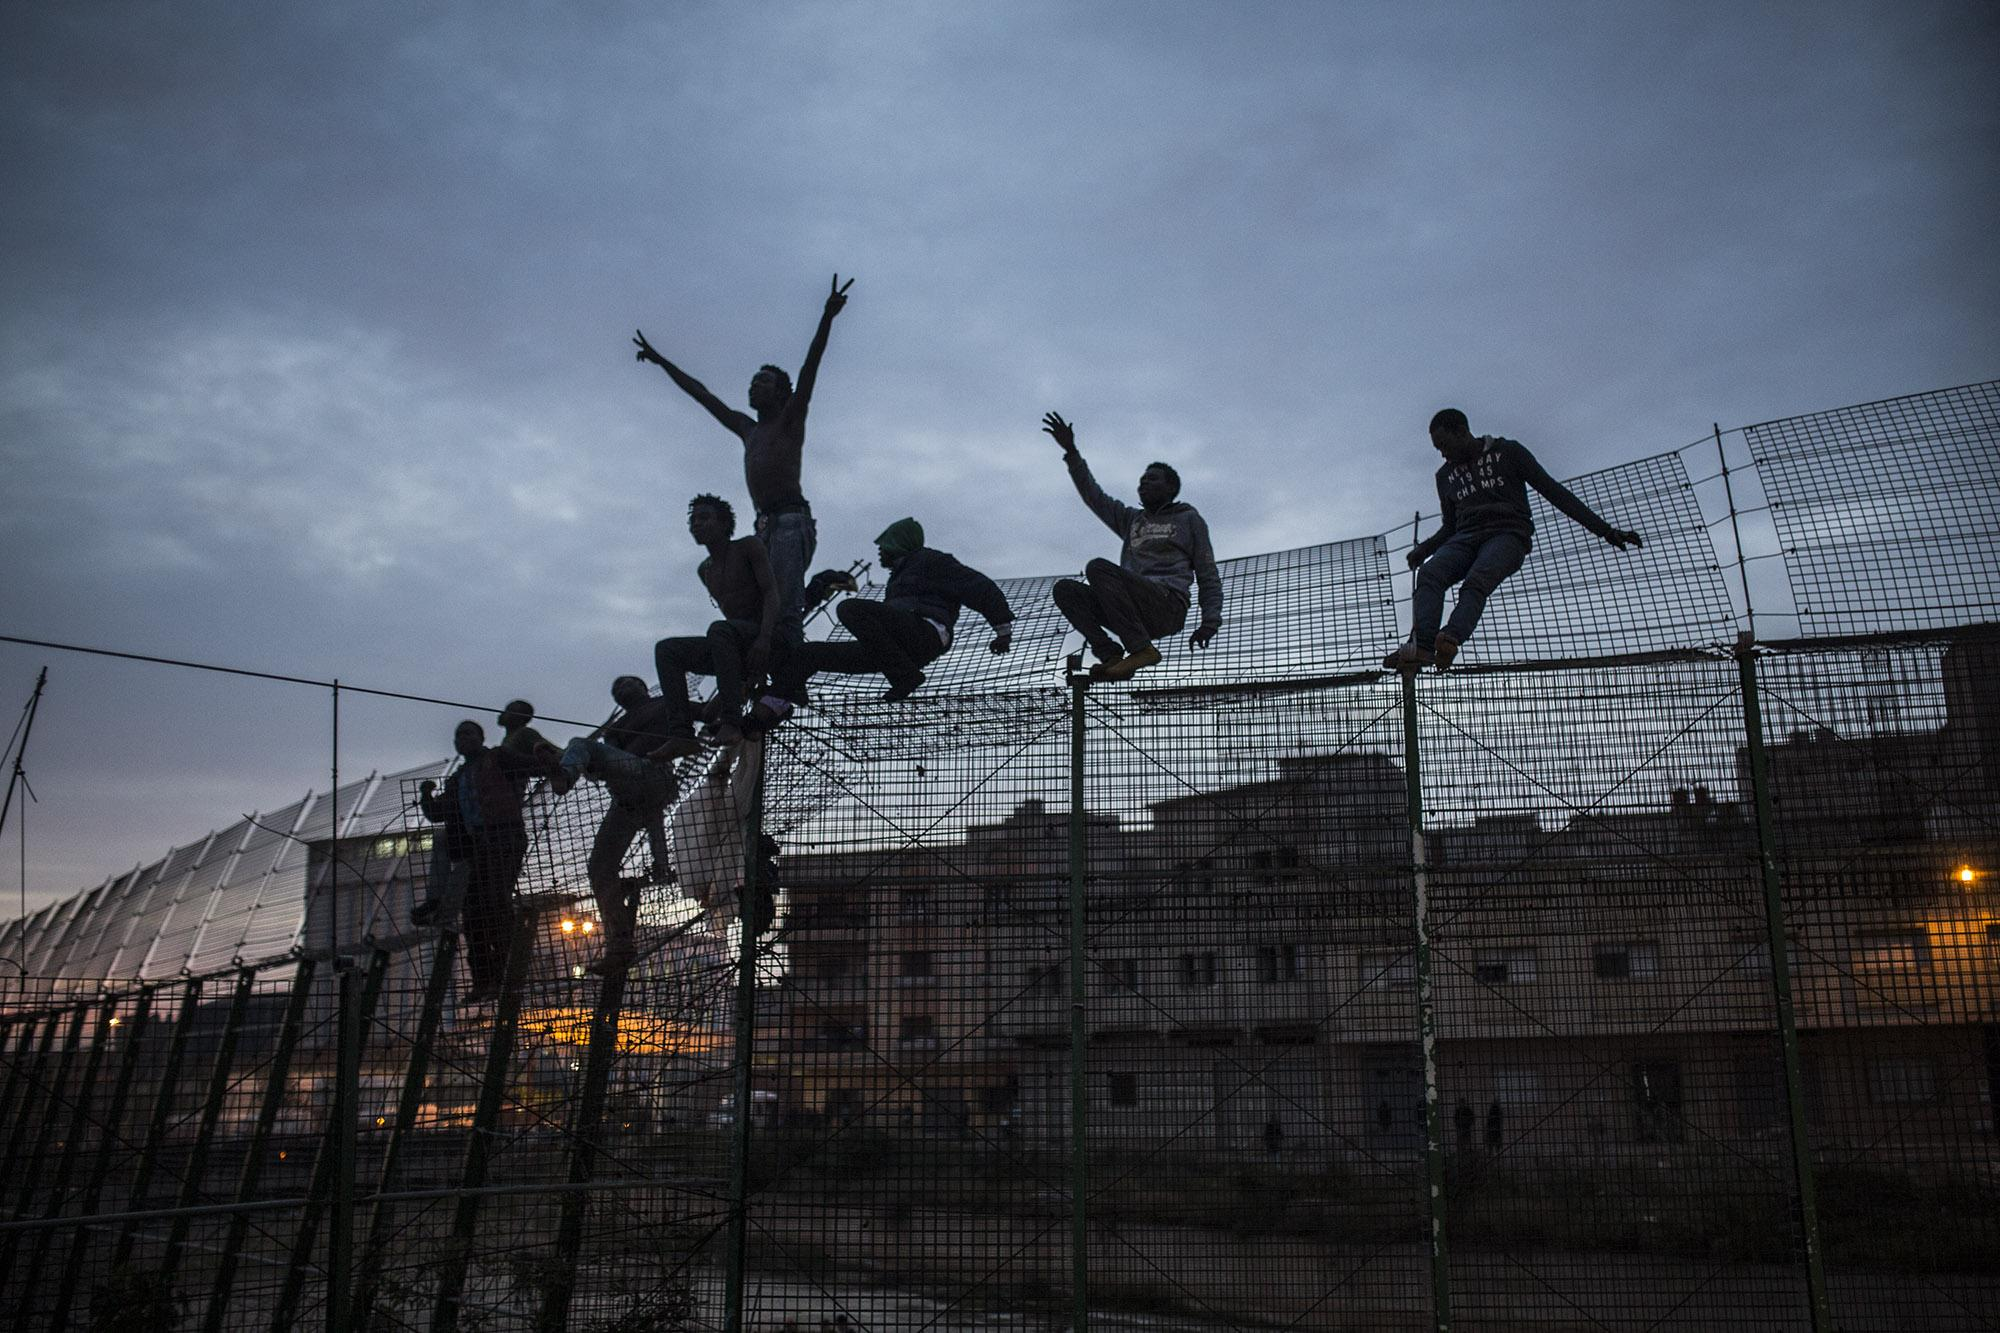 Sub-Saharan migrants climb over a metallic fence that divides Morocco and the Spanish enclave of Melilla on Friday March 28, 2014. Several hundred African migrants tried to cross barbed-wire border fences to enter the Spanish enclave of Melilla from Morocco but most were blocked by Moroccan police or pushedback by the Spanish Guardia Civil as a handful managed to remain in European soil. In early 2014 thousands of migrants seeking a better life who couldn't afoard to pay to cross the Mediterranean sea aboard a rubber raft to get to Europe, were living illegally in the forests of north Morocco hoping they could enter Melilla and Spain's other north African coastal enclave, Ceuta. (© Santi Palacios)